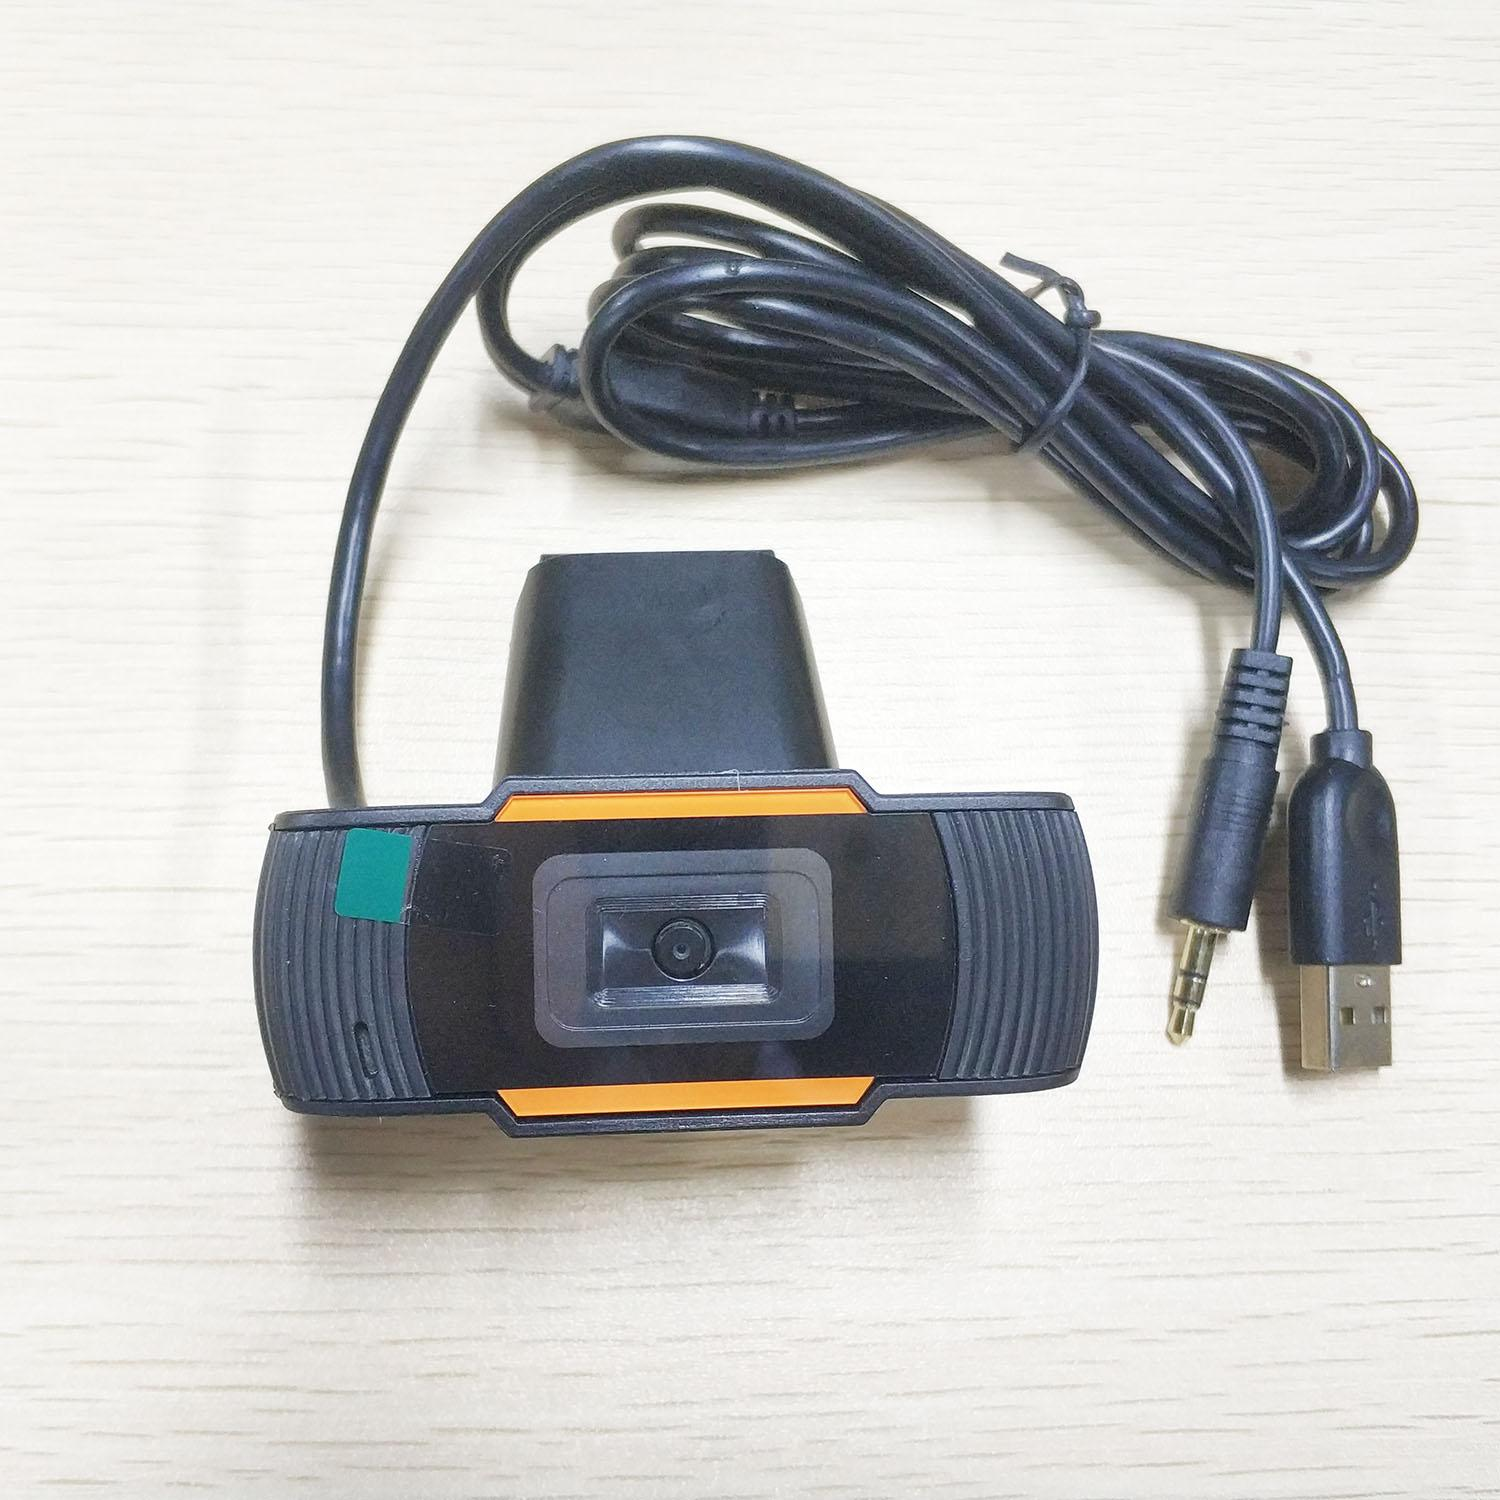 1080p Hd Webcam With Microphone 2 Lines Auto Focus 5 Megapixel Usb Streaming Web Camera For Computer Usb Webcam